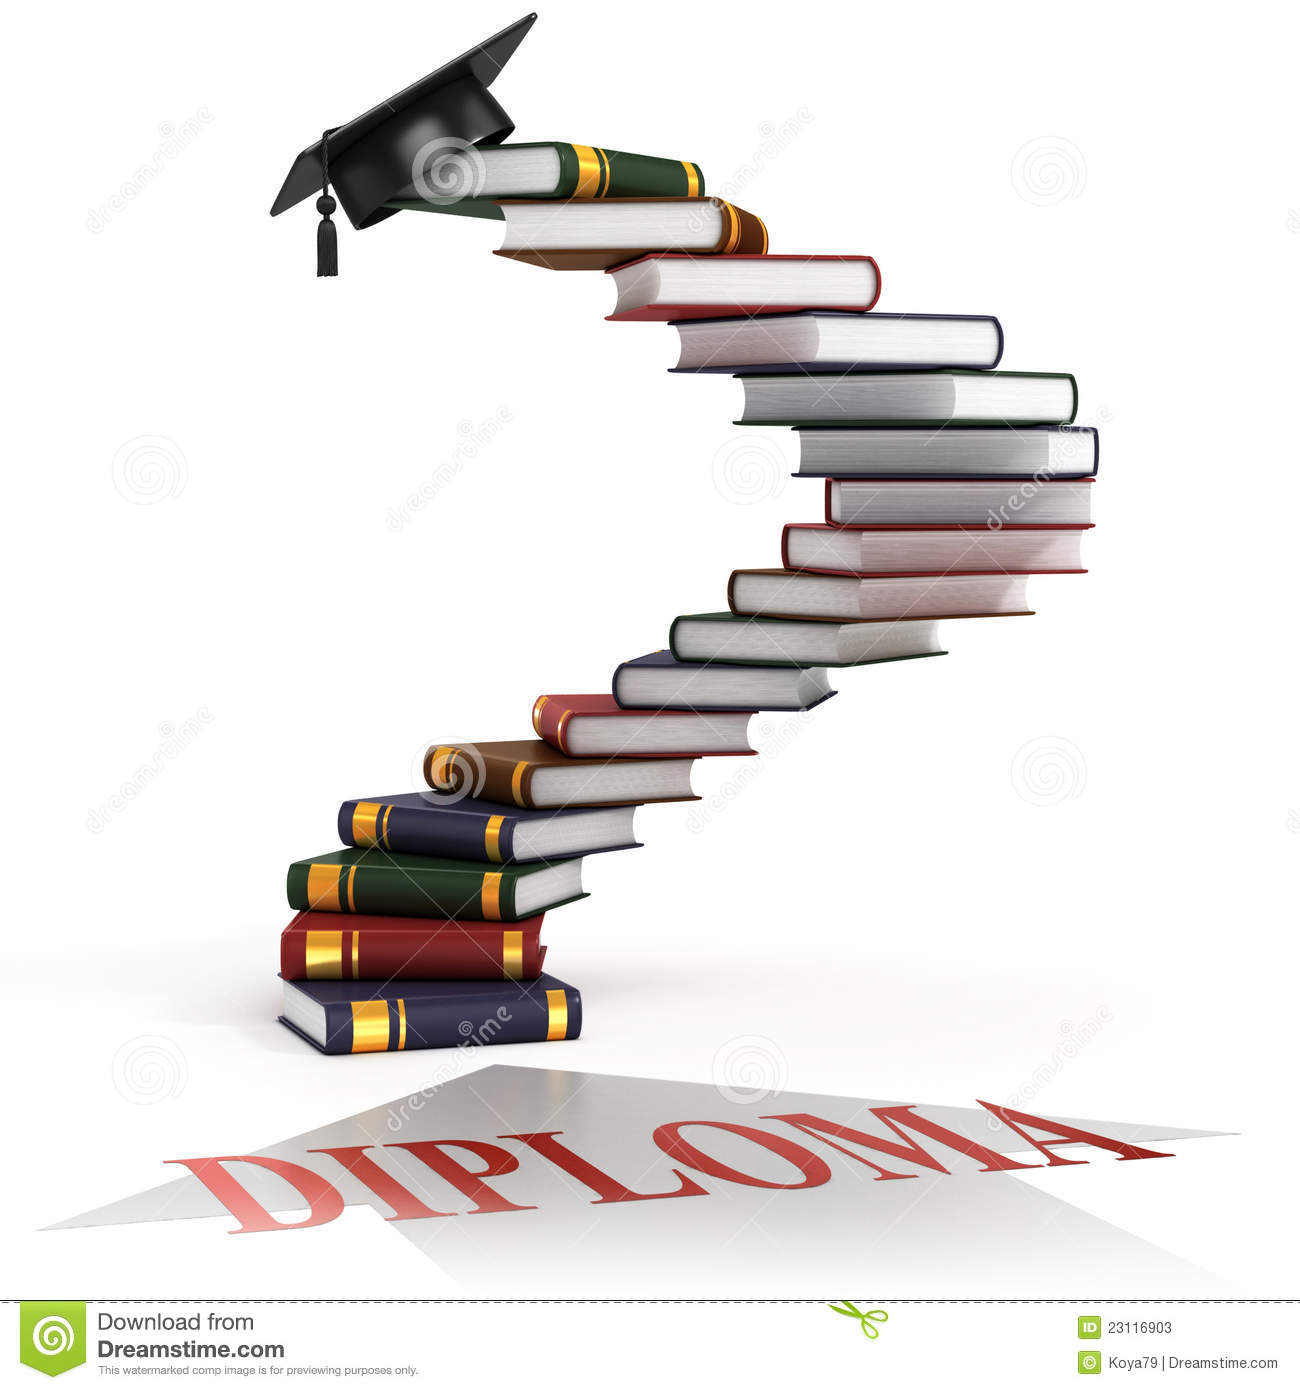 Clip 7043575 Stock Footage On The Stairs Man Walks On The Stairs D Animated Cartoon Hd as well Stock Photo Cartoon Girl Escalator D Render Image30747590 in addition Roll Out Clipart in addition El Business Peoples With Different Attitude Powerpoint Template also Old Wood Texture 1162282. on cartoon stairs